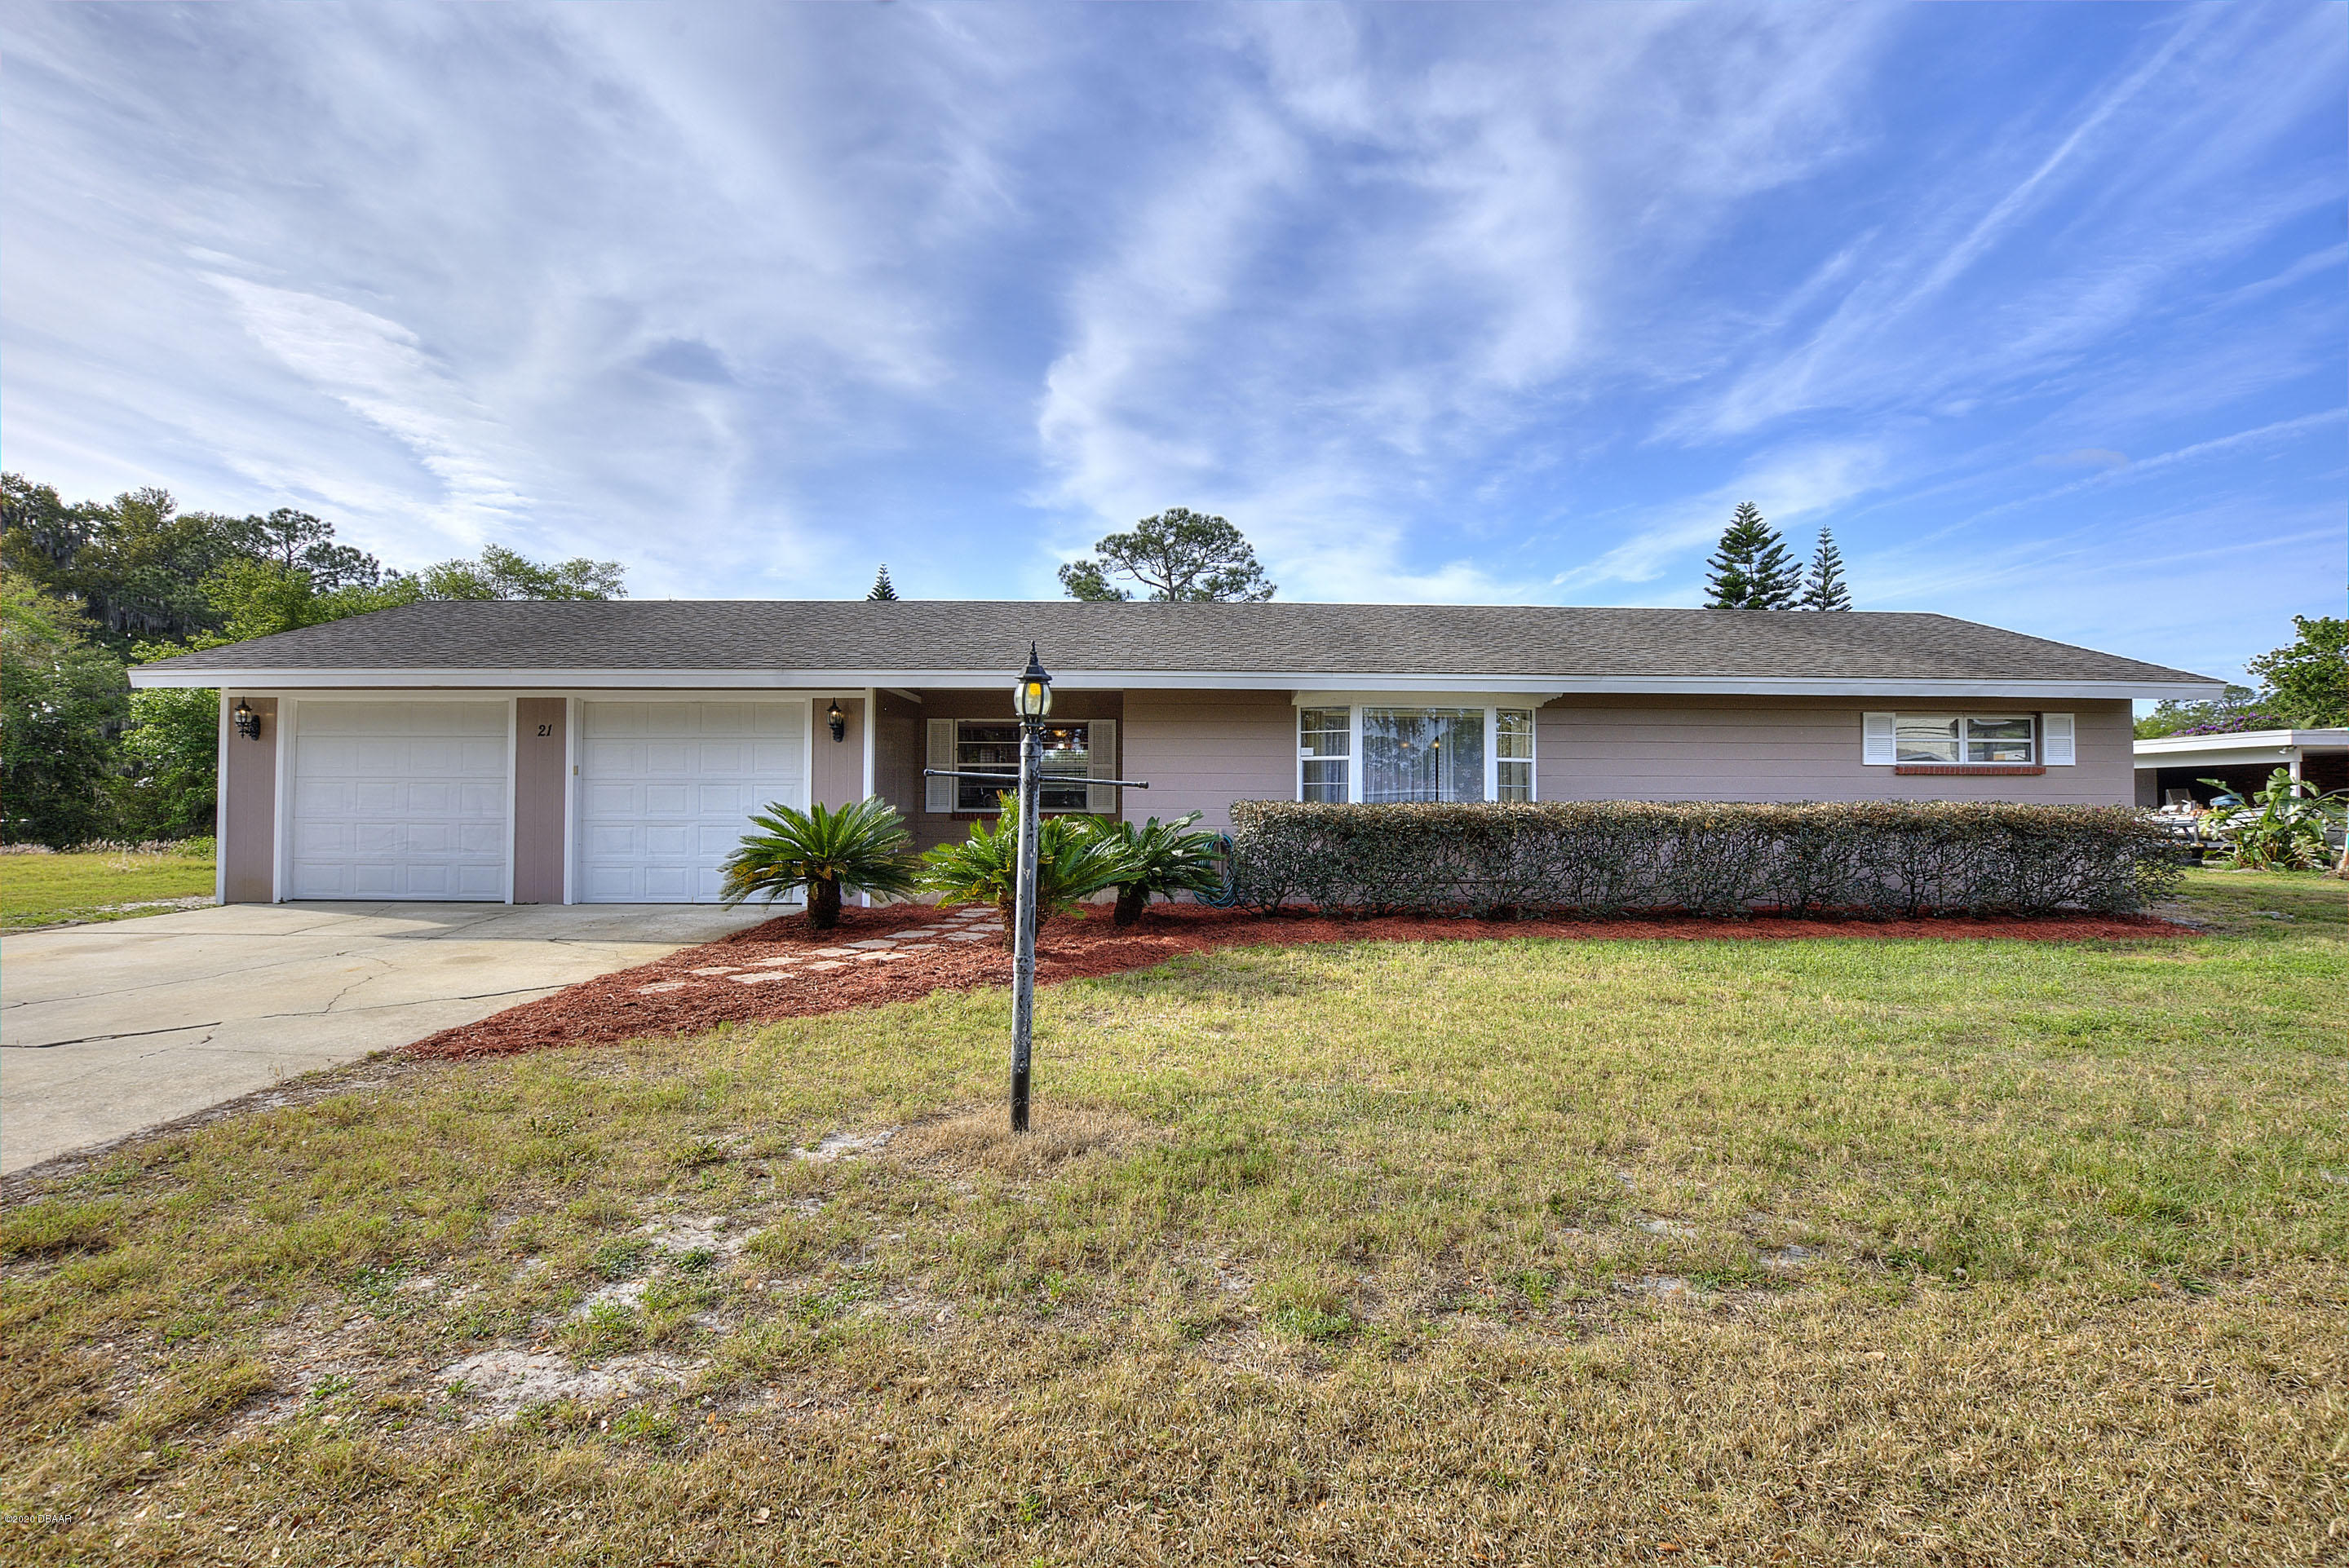 21 Glantane Avenue, Haines City, FL 33844